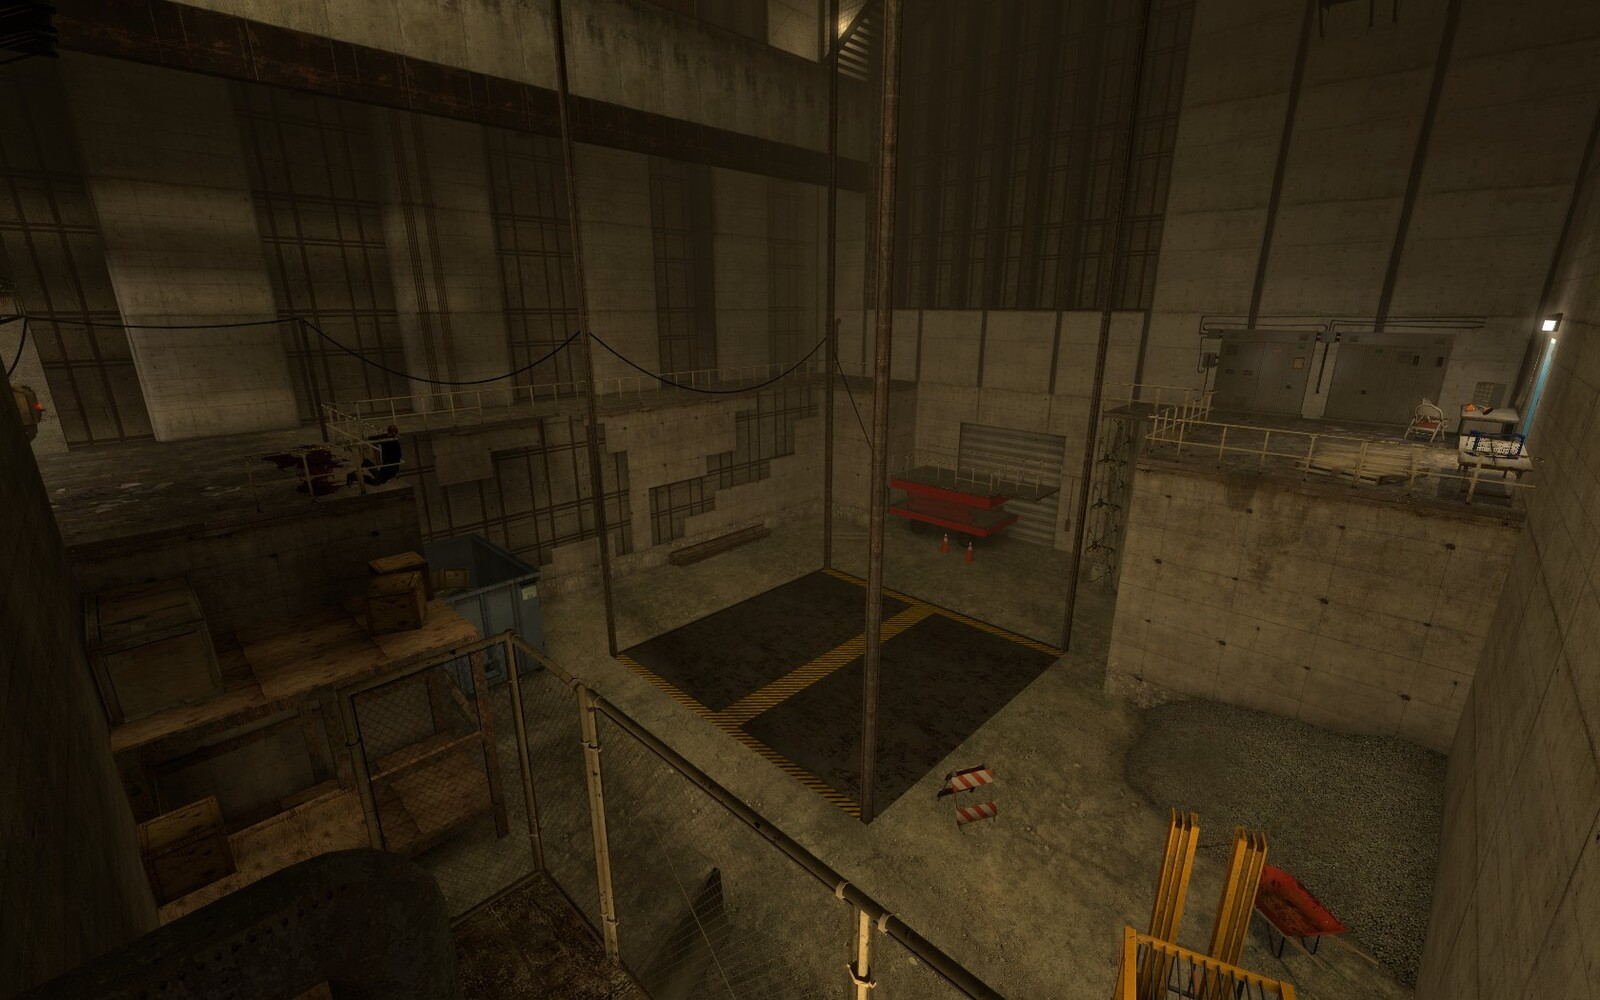 The bottom section of the 2nd chamber contains a scissor lift obstruction. An easy one to beat but an interesting one for the player.